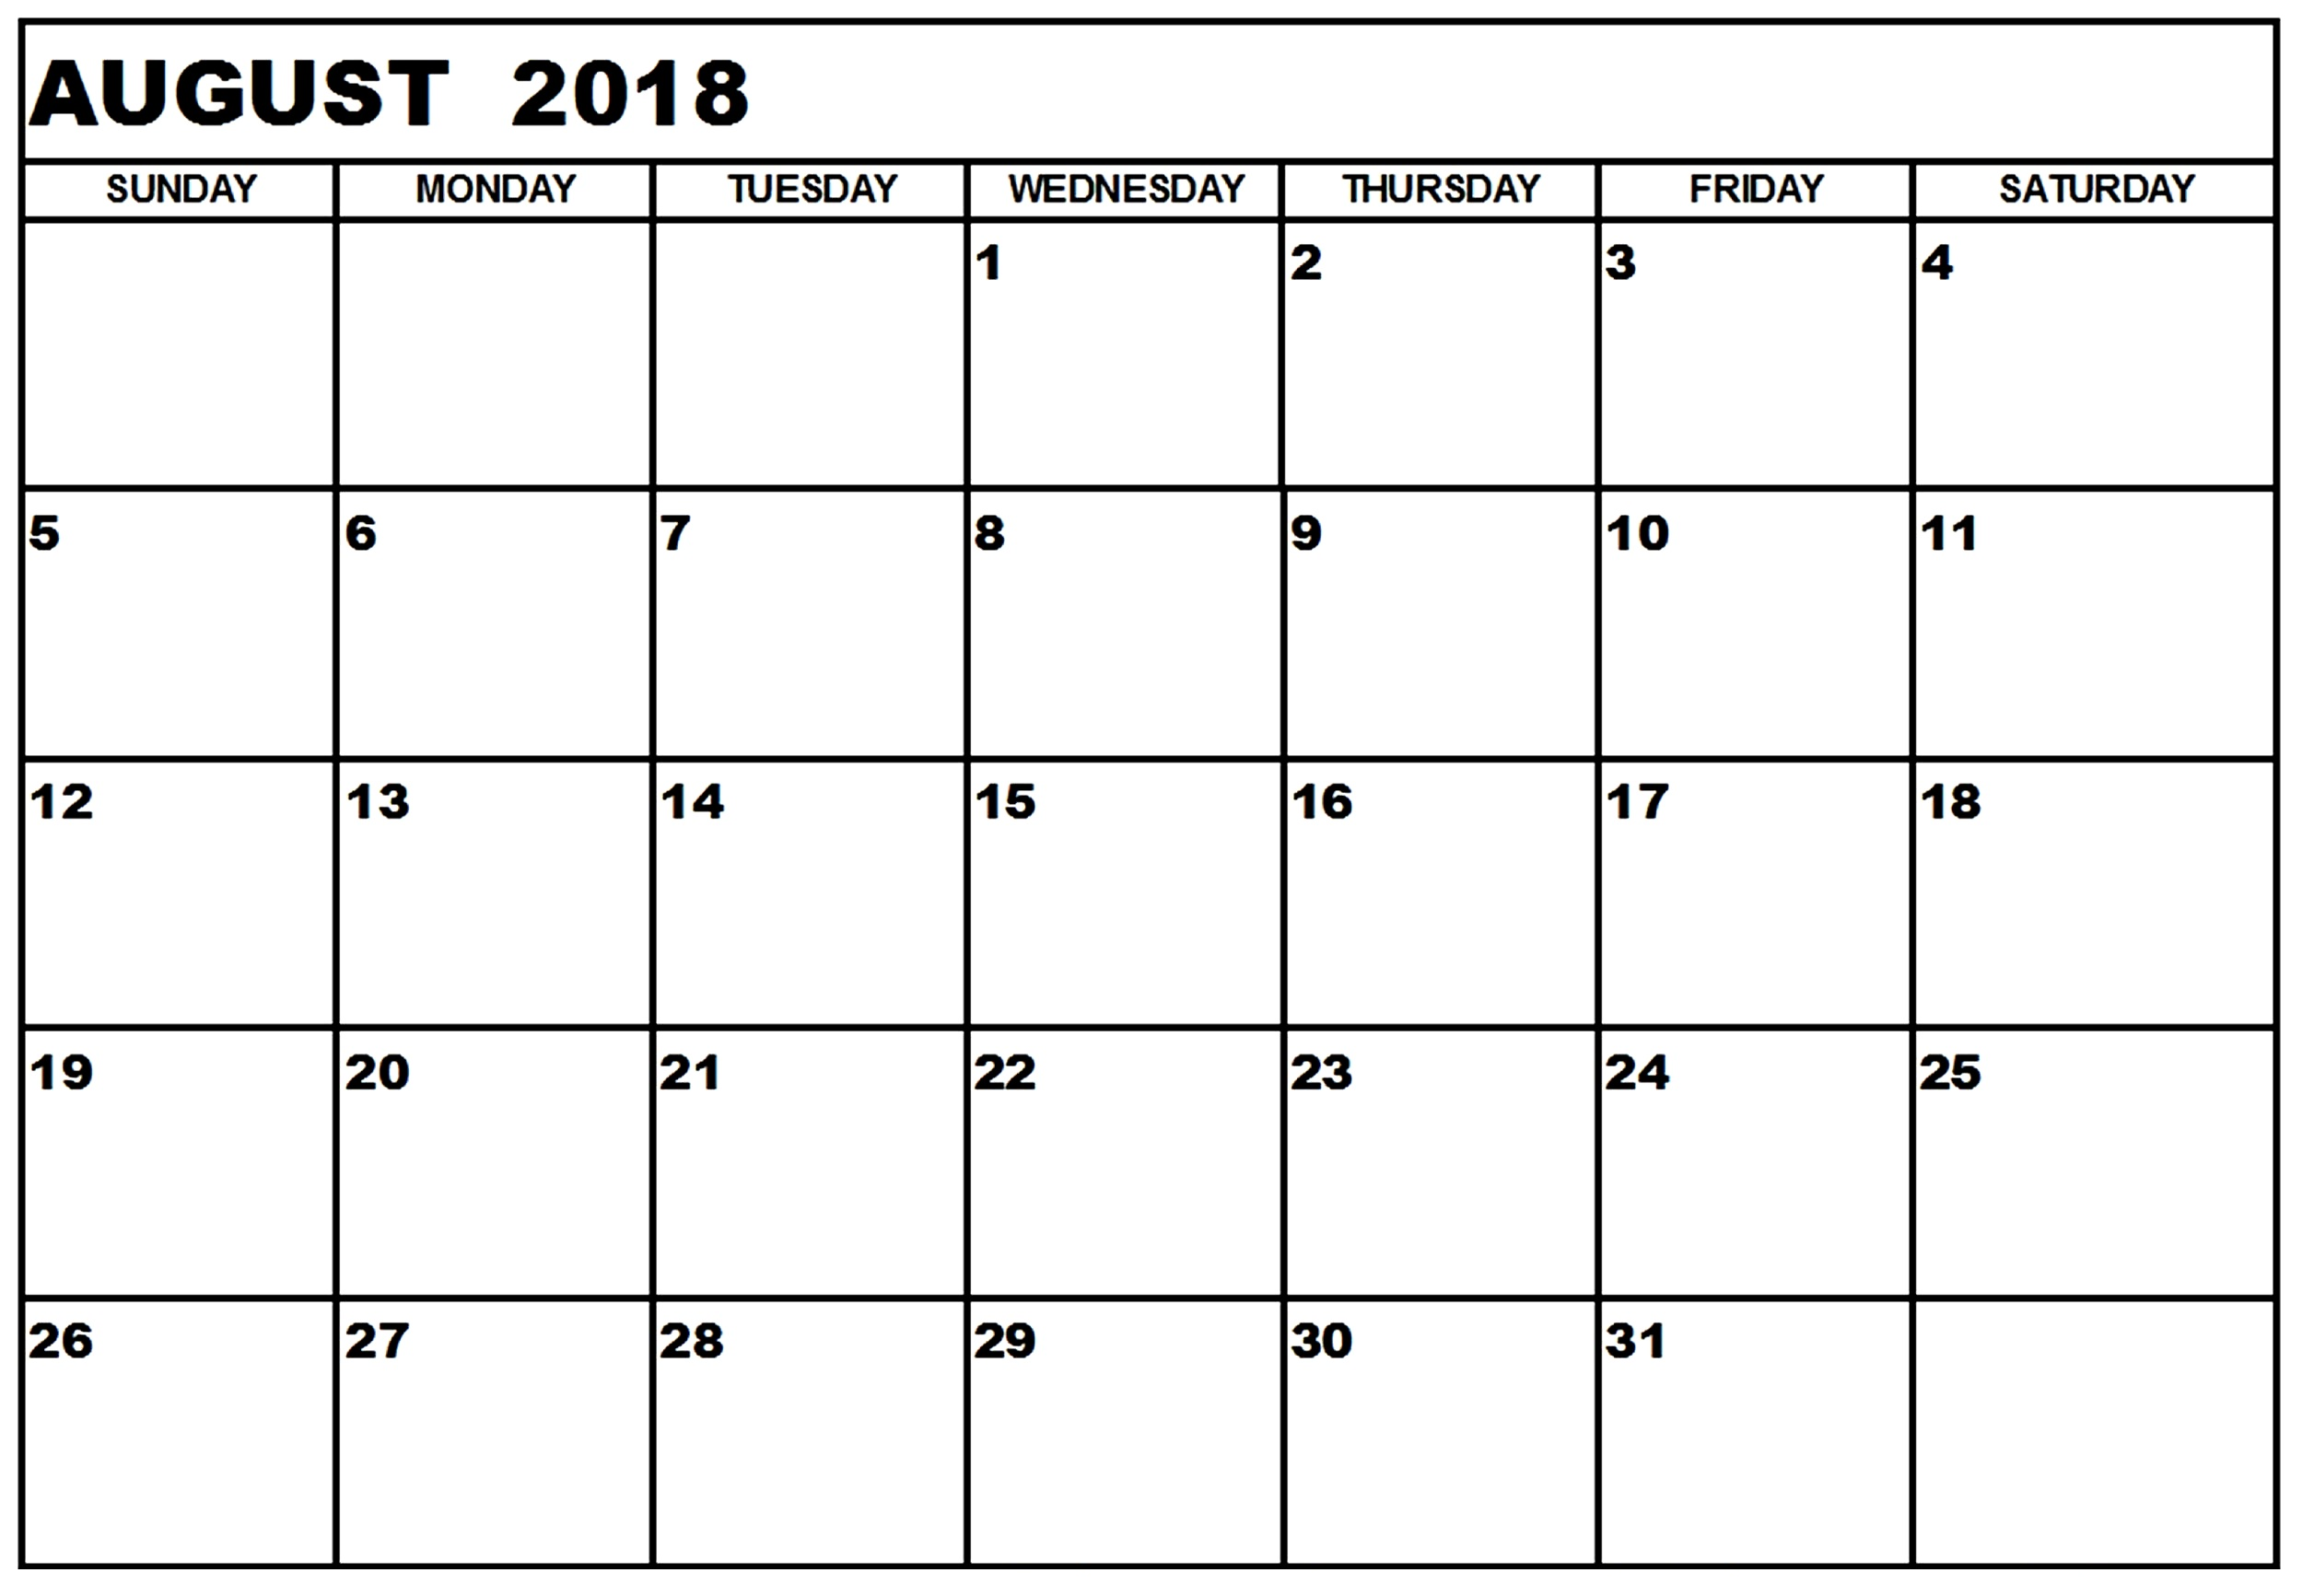 Monthly Calendar August 2018 Printable